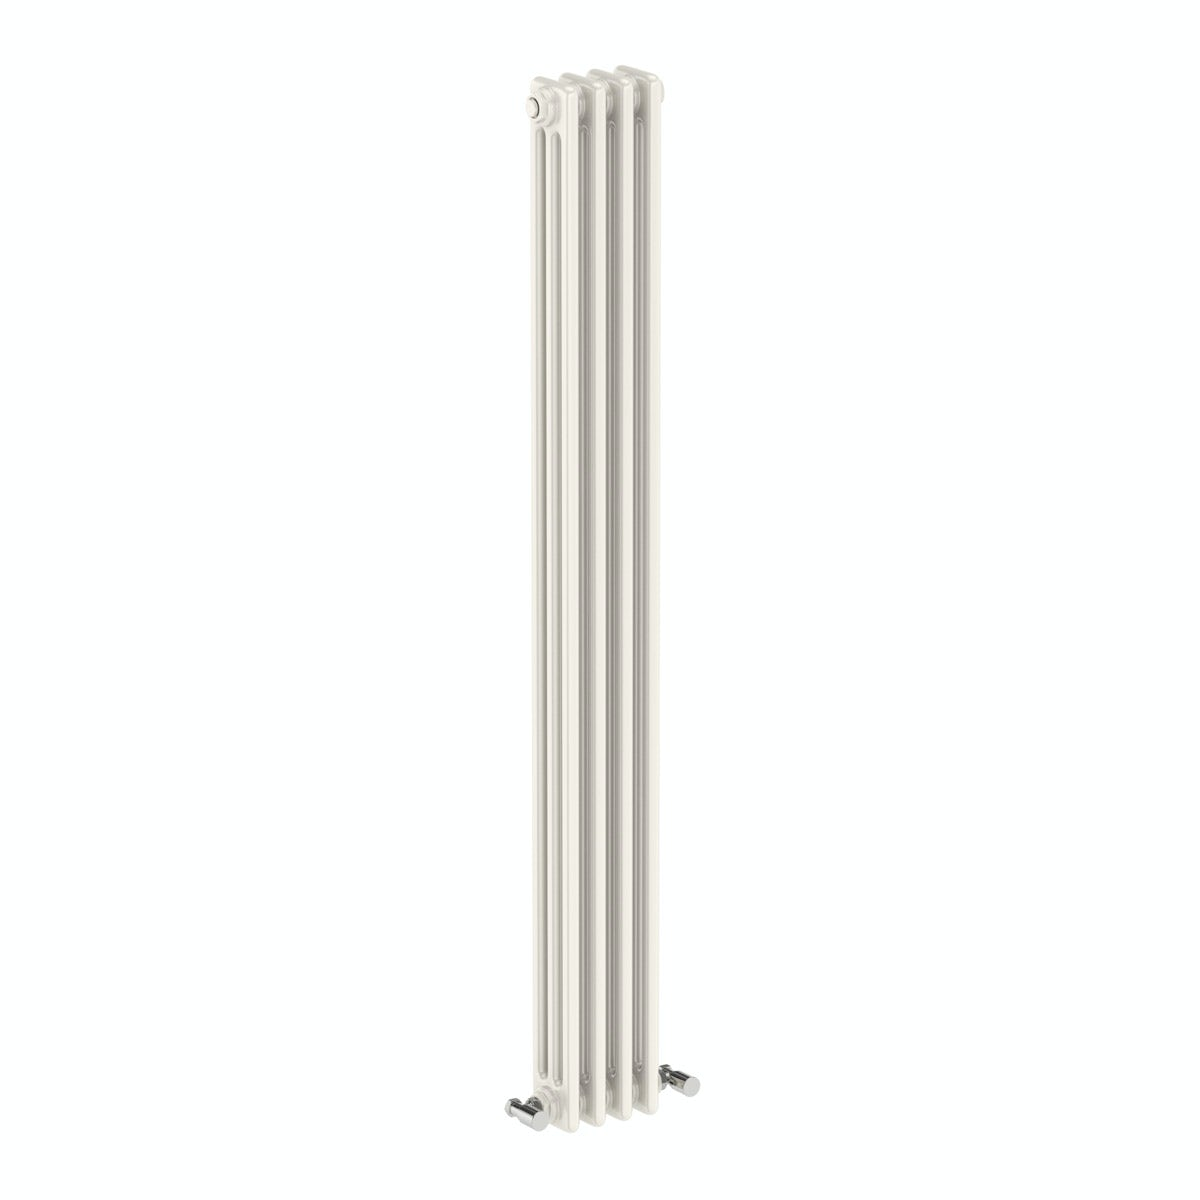 Vertical white triple column radiator 1500 x 155